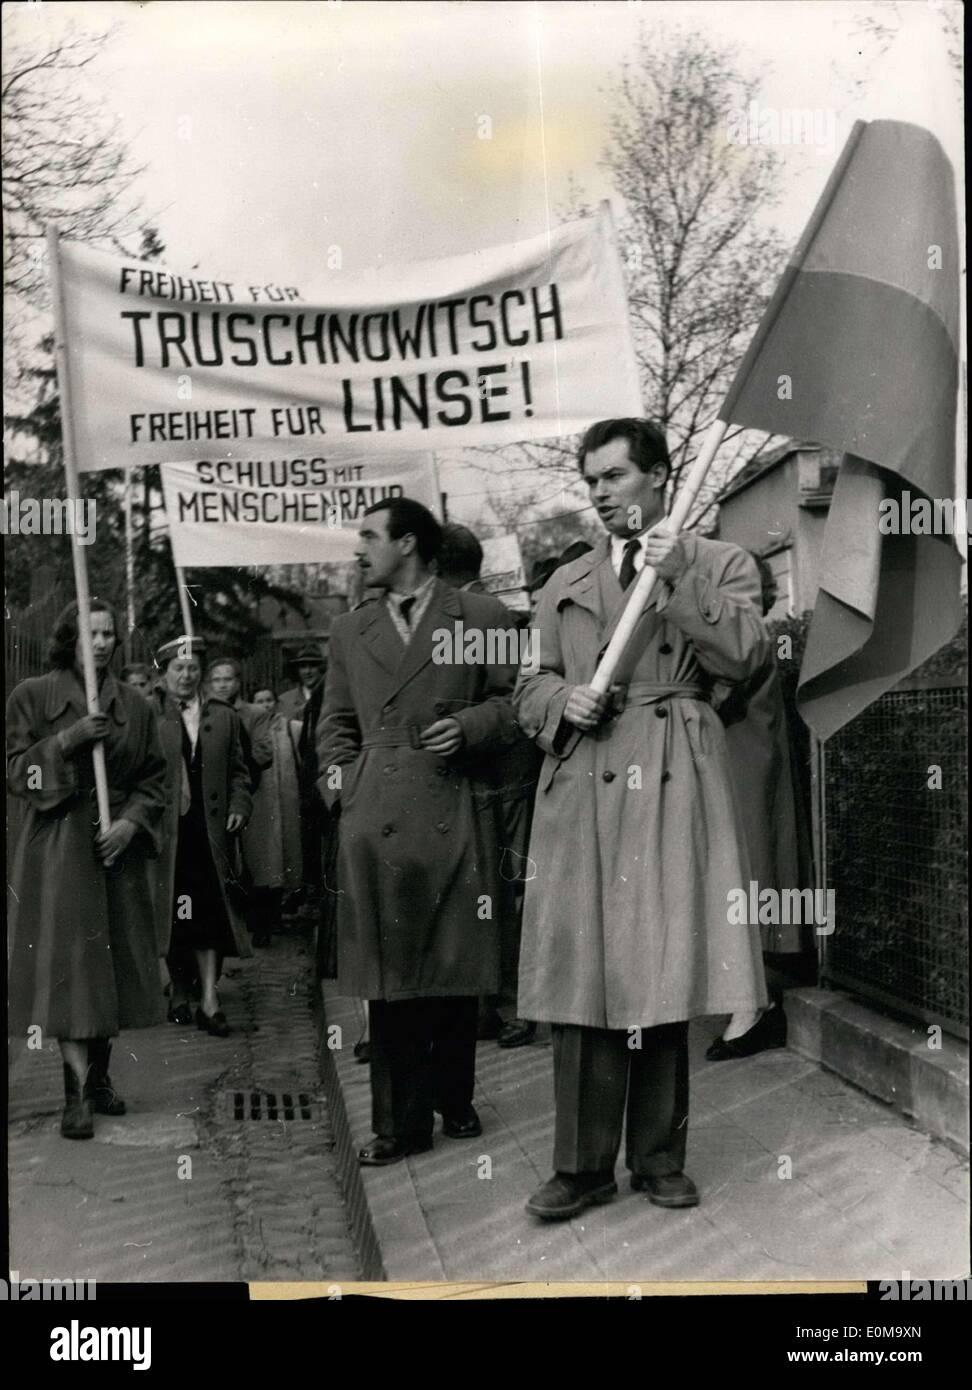 Apr. 17, 1954 - Put an end to abduction! Freedom for Truchnowitsch! Under this banner a protest rally against the abduction of the first chairperson of the Russian resistance movement NTS, Dr. Alexander Truchnowitsch, occurred this afternoon in Frankfurt am Main. Subsequently participants of this emigrant movement and numerous conventioneers trekked to the residence of the Russian military mission in FFM-Niederrad in order to demonstrate with pamphlets and banners against this egregious, new act of violence of the Soviets. - Stock Image